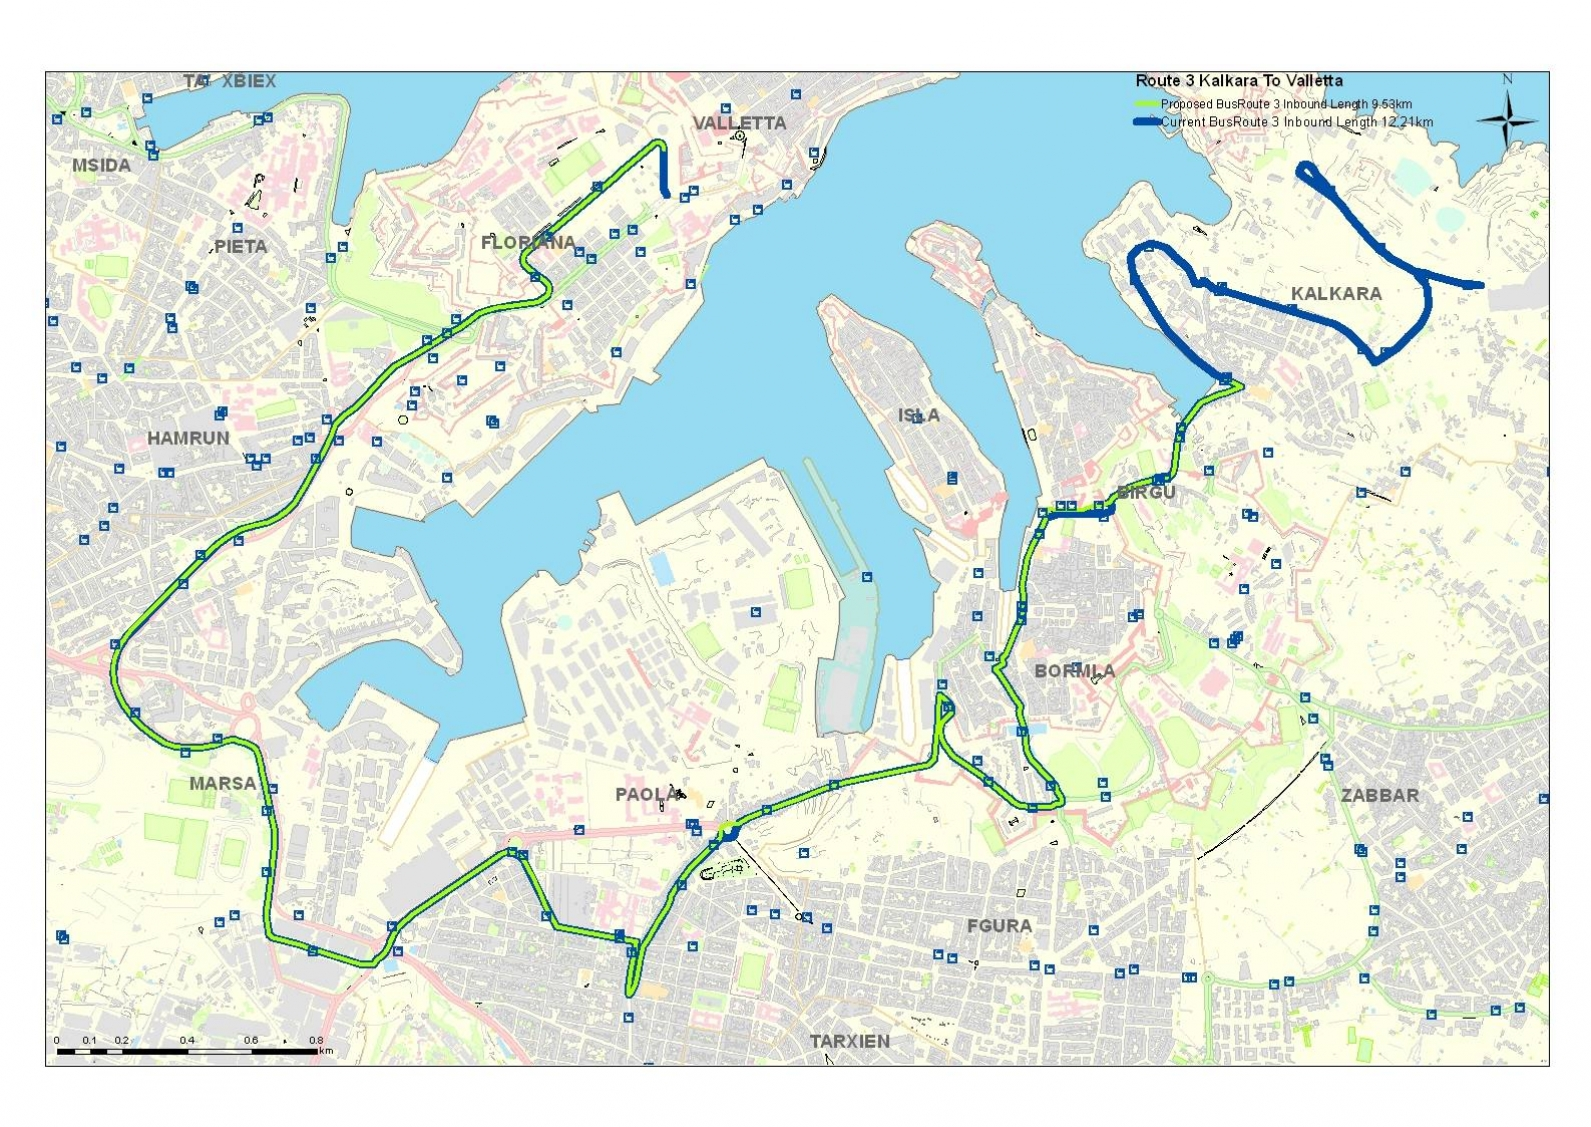 Land-current-network-routes-and-schedules-Cottonera-birgu-bormla-isla-kalkara-5